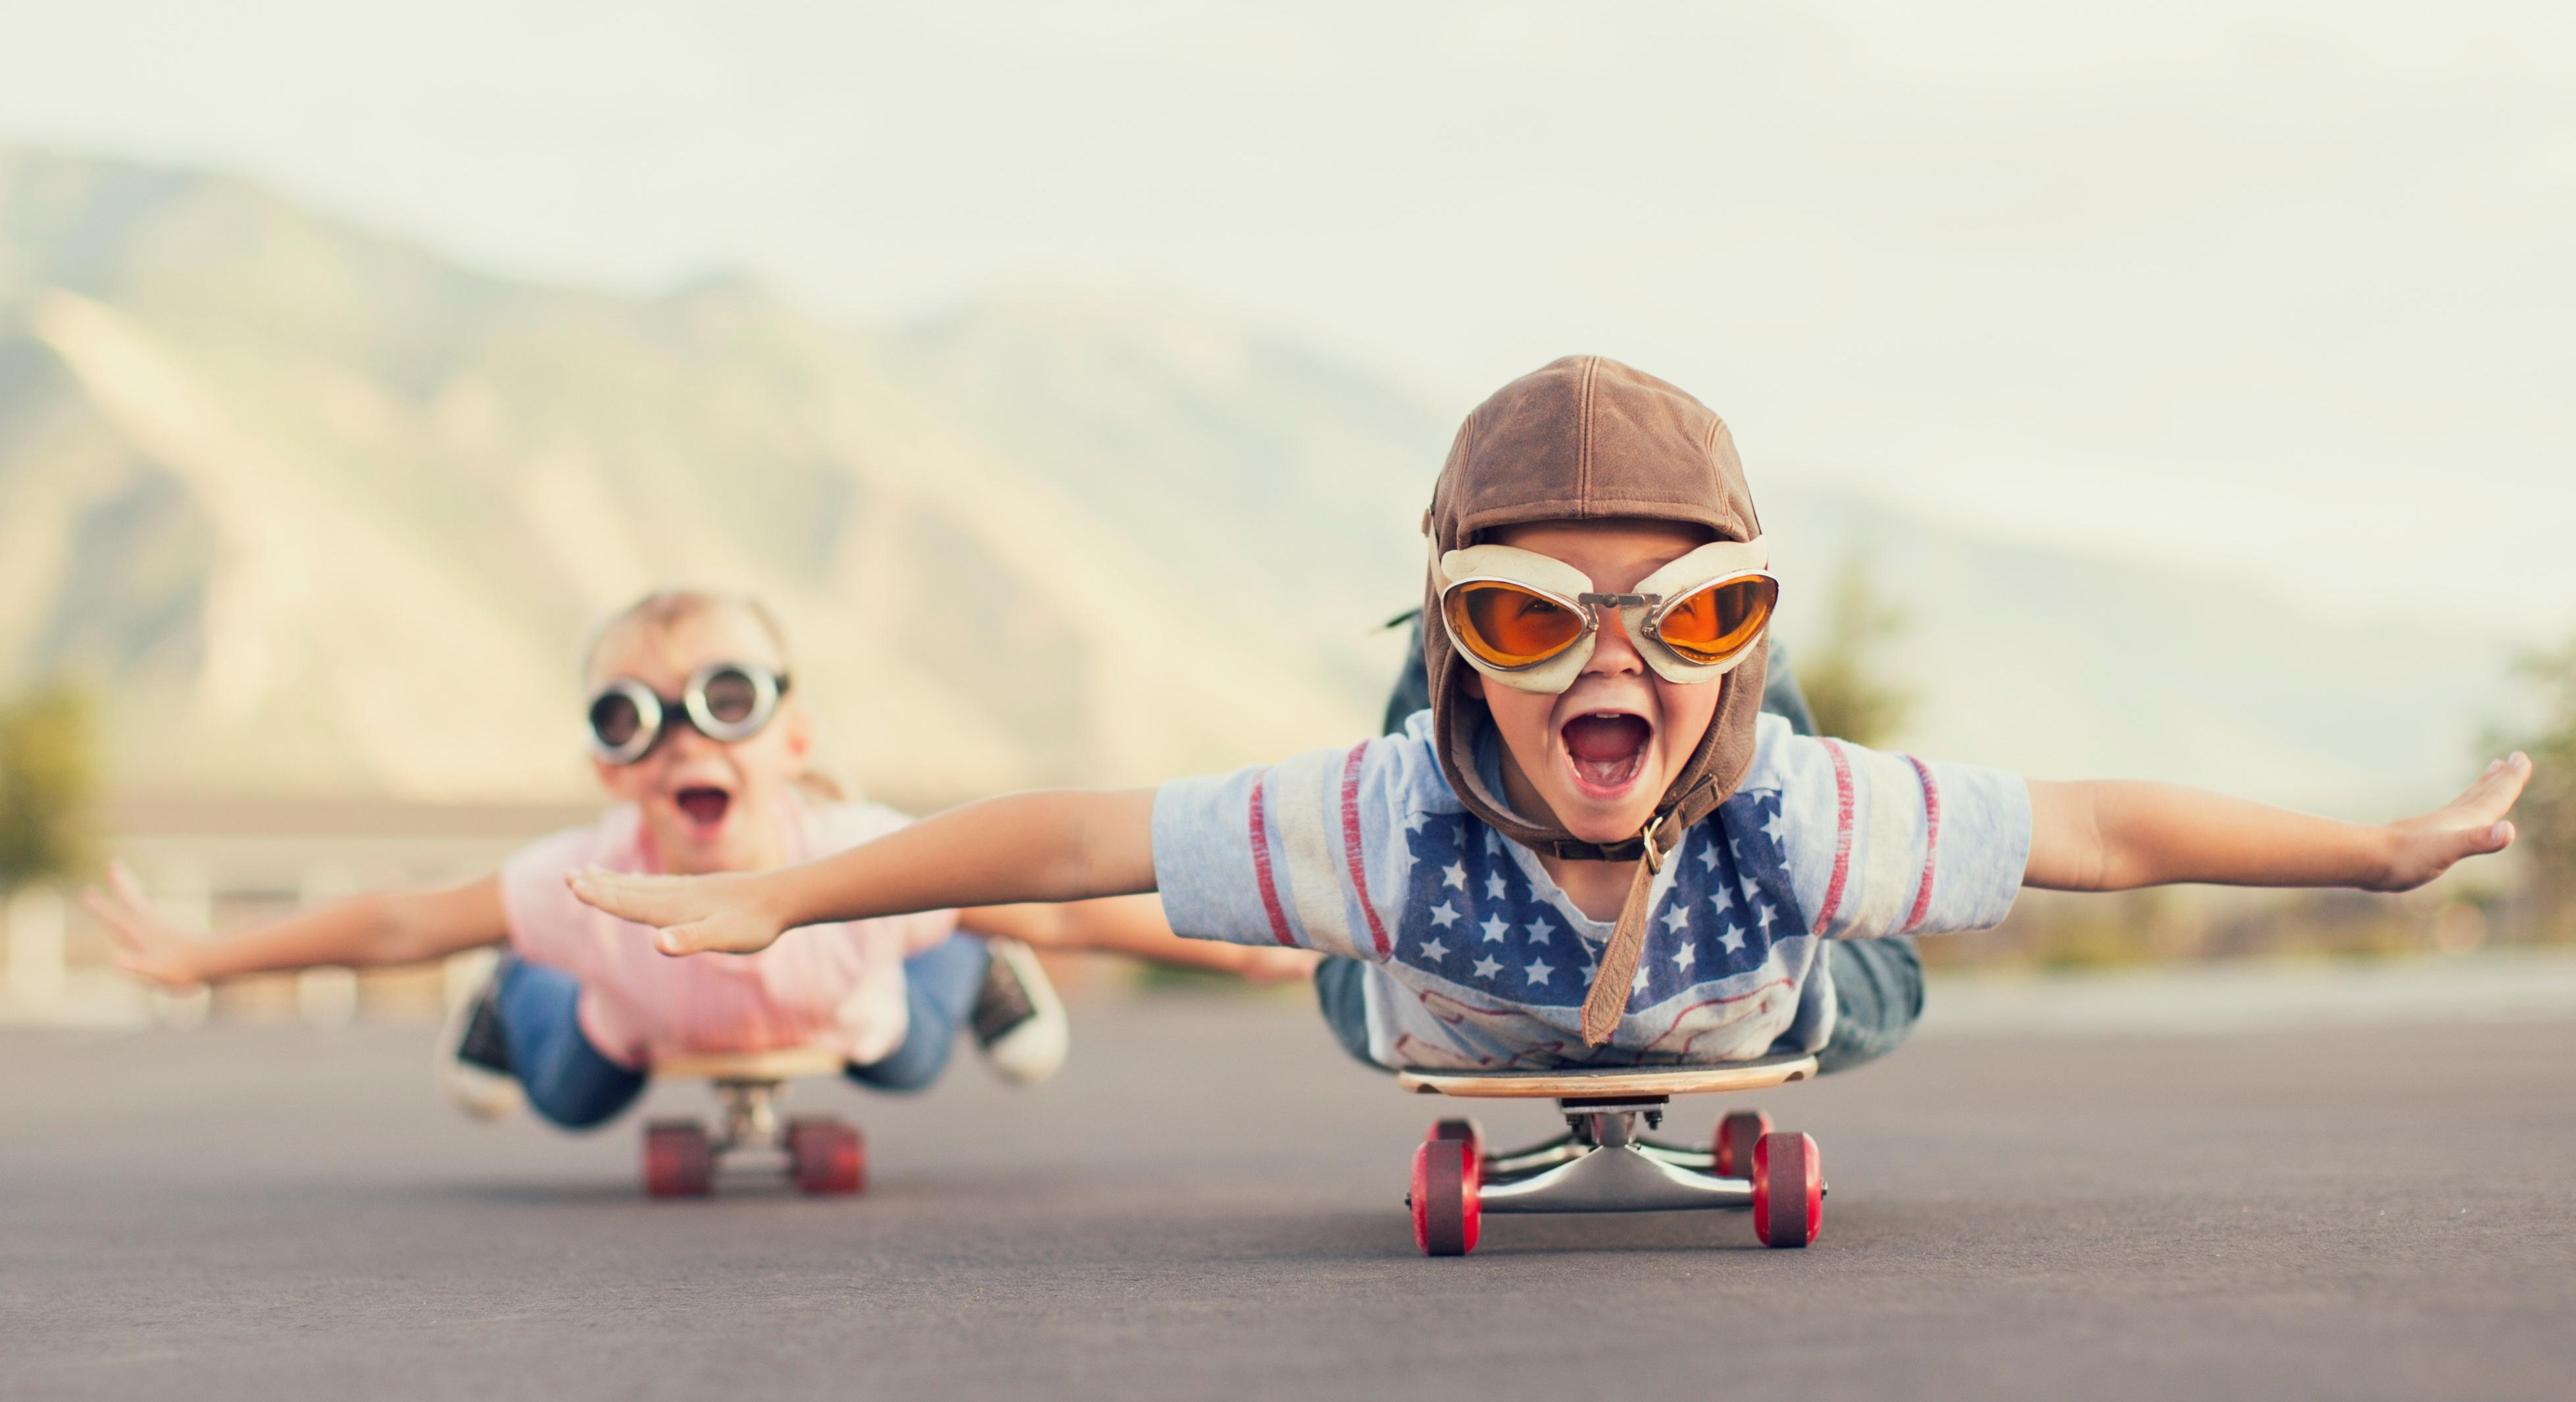 future kids on skateboard